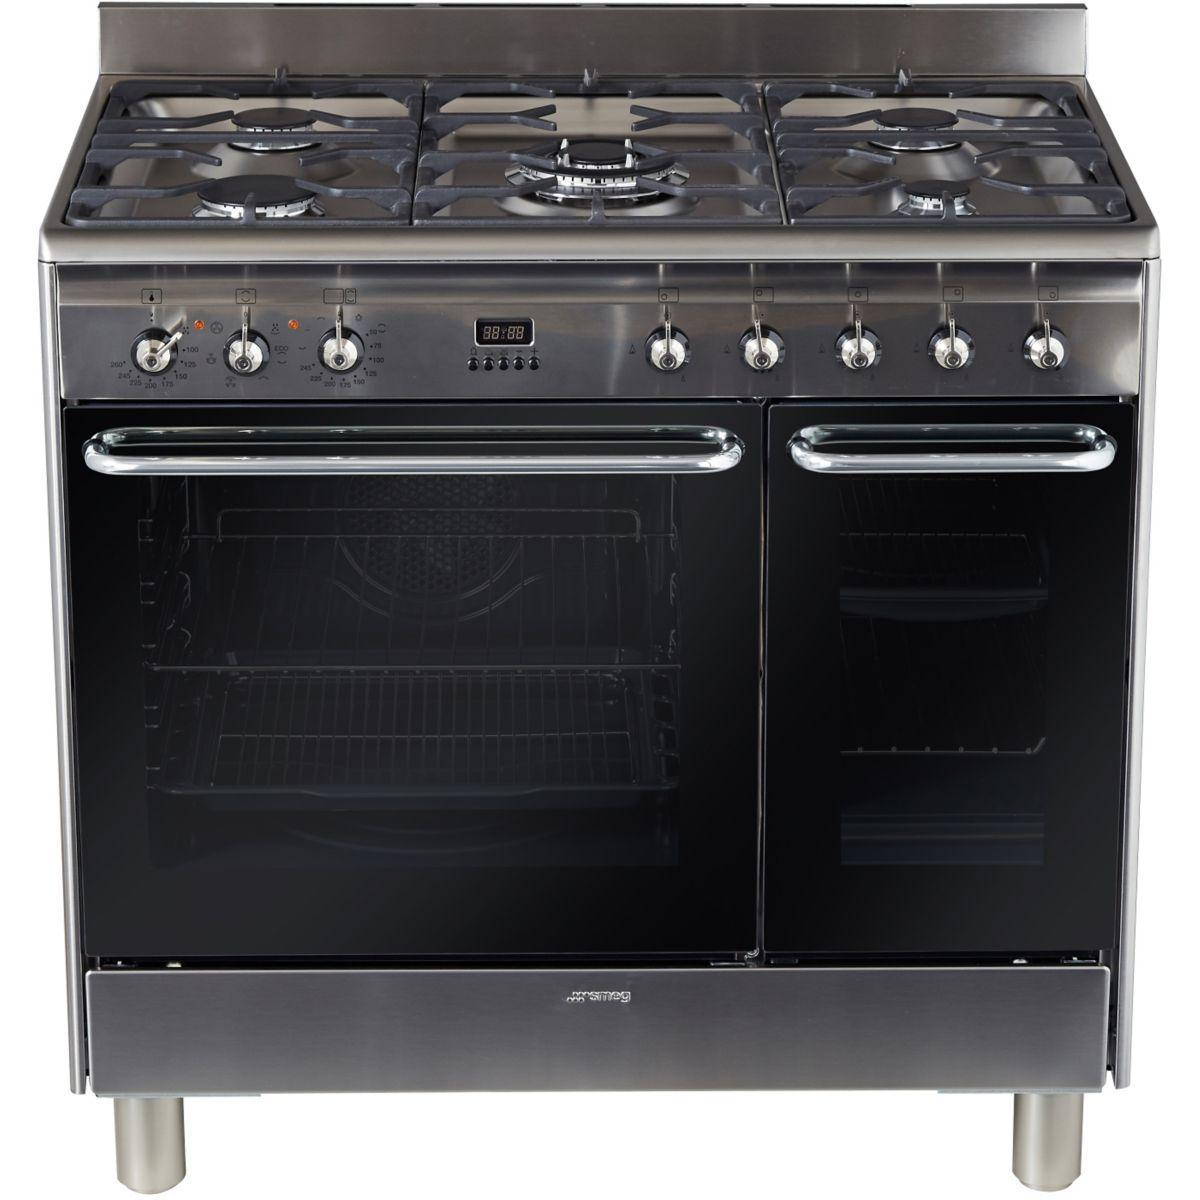 Pack promo piano de cuisson smeg cg92x9 + cr�dence smeg kit 90 x inox + hotte d�corative smeg kdc91xe (photo)